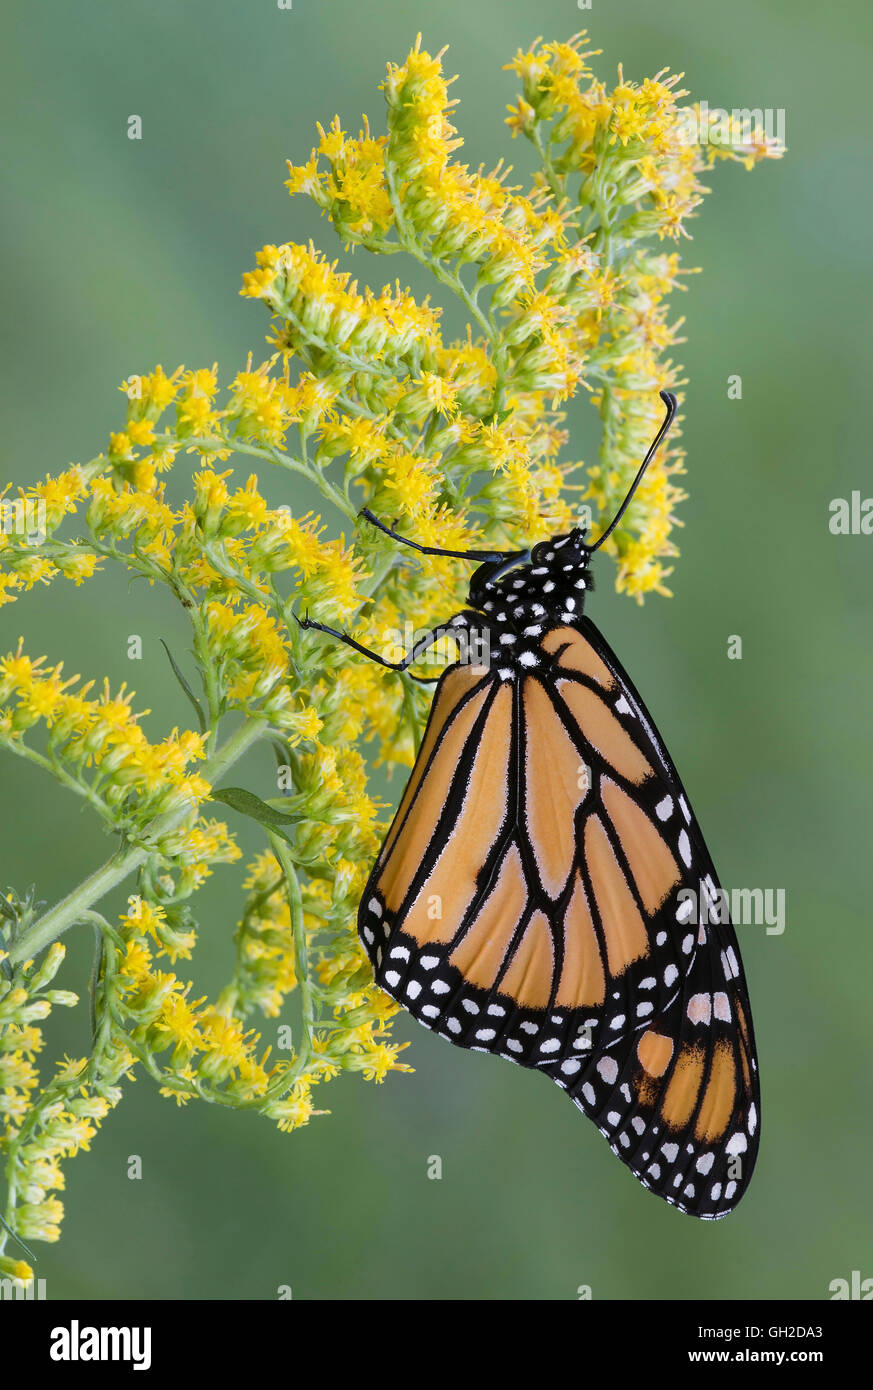 Monarch Butterfly (Danaus plexippus) on Goldenrod (Solidago sps), late Summer, early Fall, E USA, by Skip Moody/Dembinsky - Stock Image